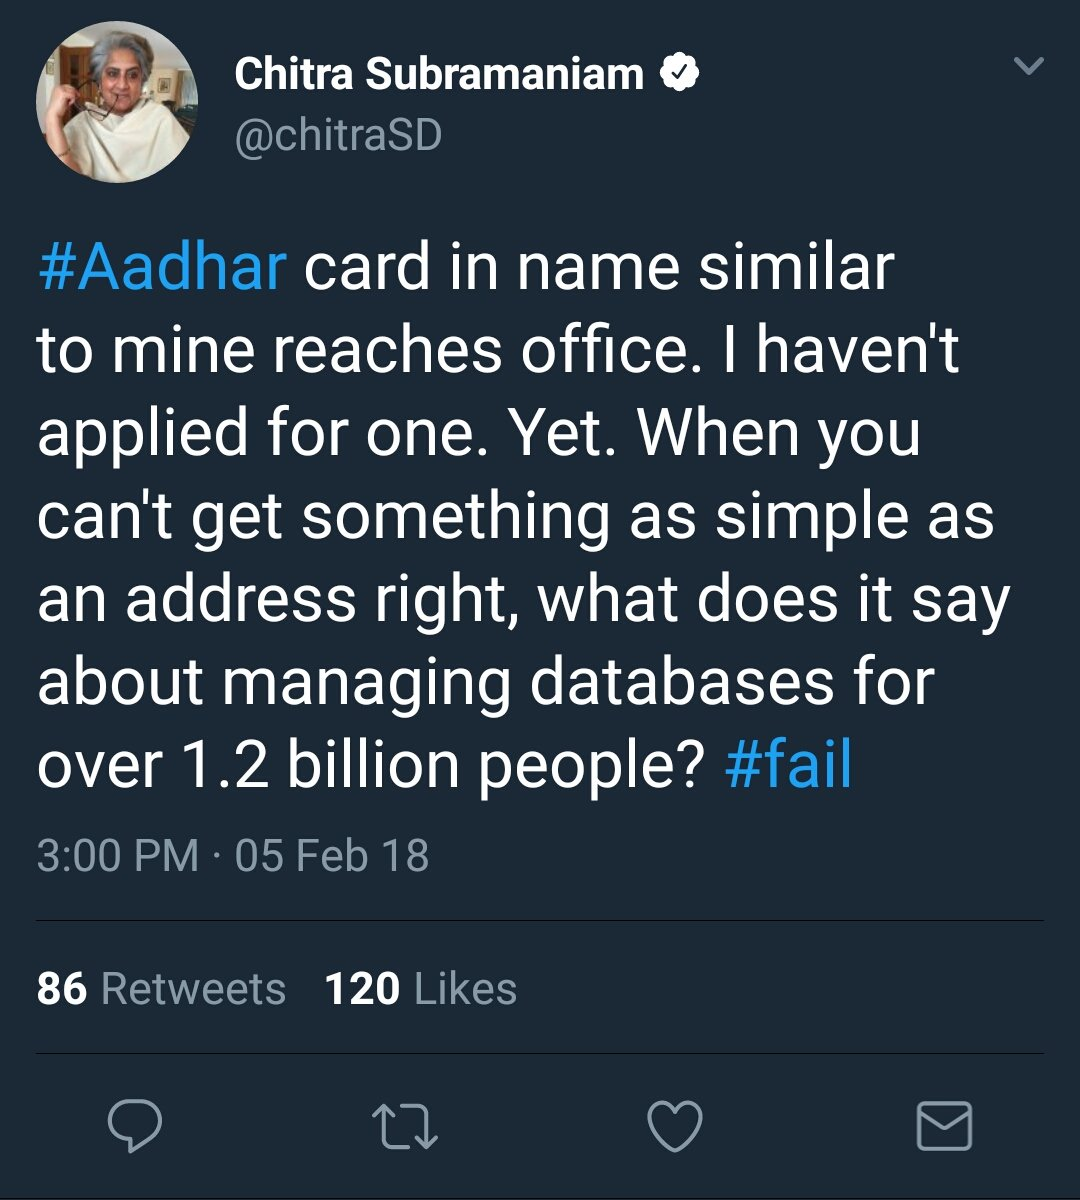 Journalist Chitra Subramanian says she received someone else's Aadhaar - it had similar name